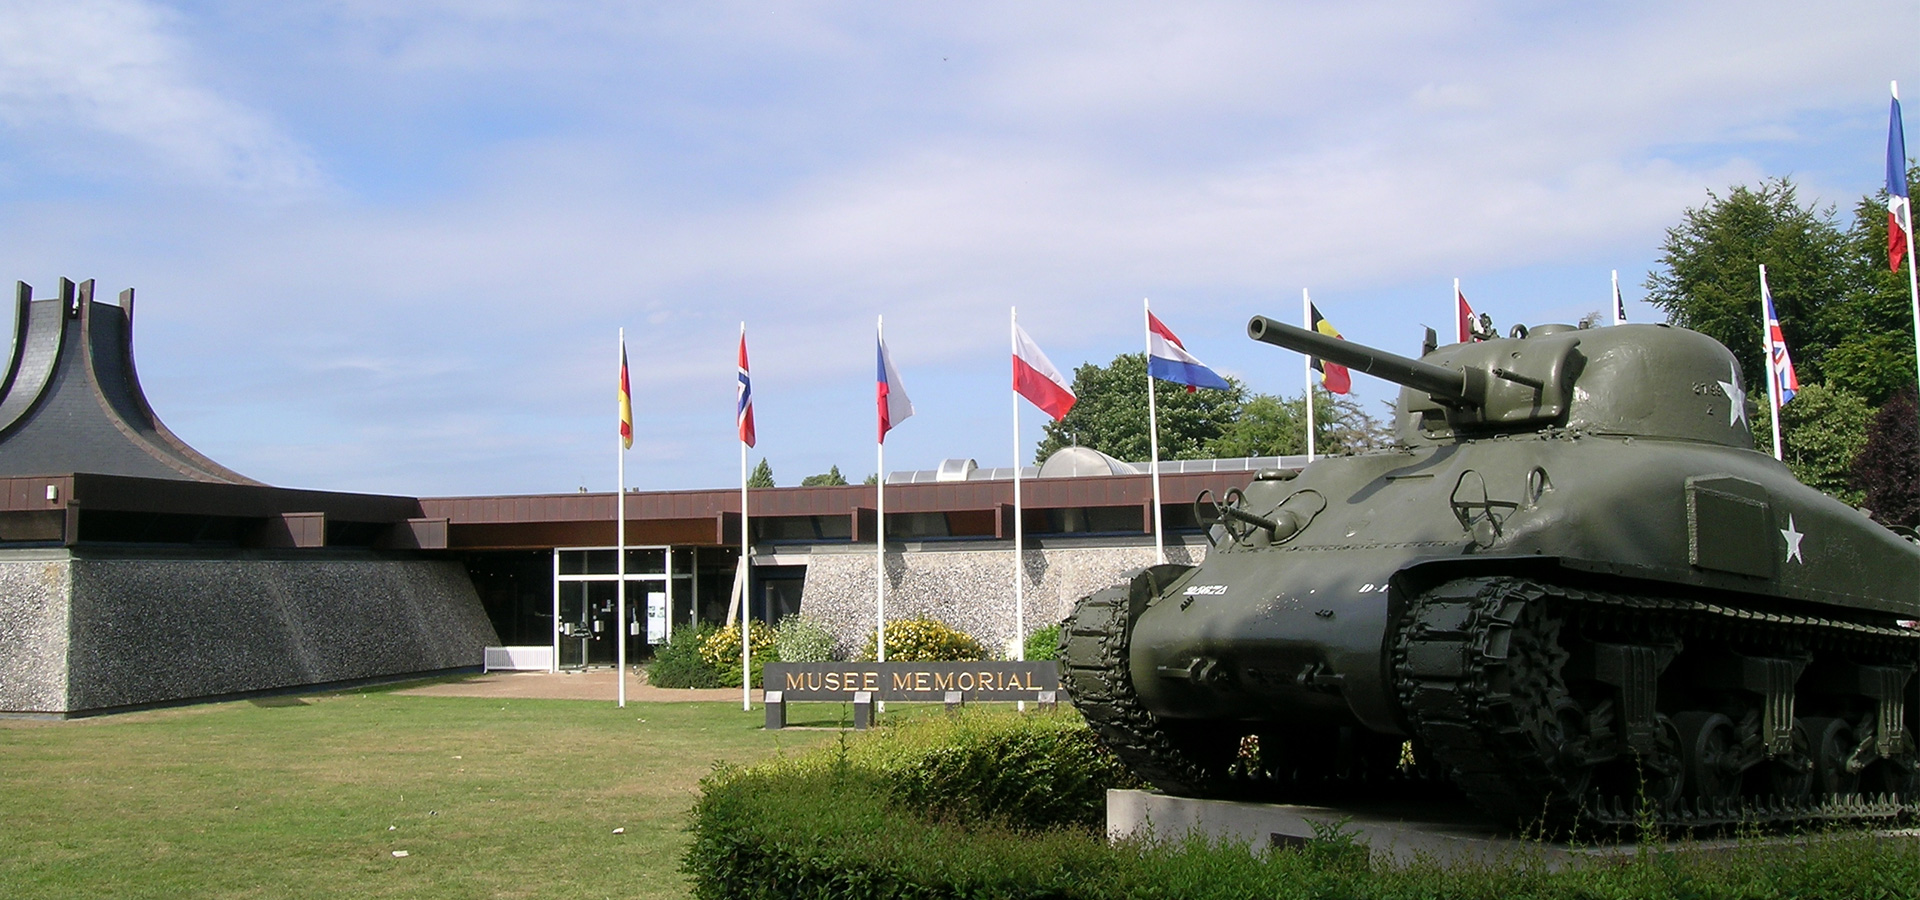 Memorial museum Batlle of Normandy